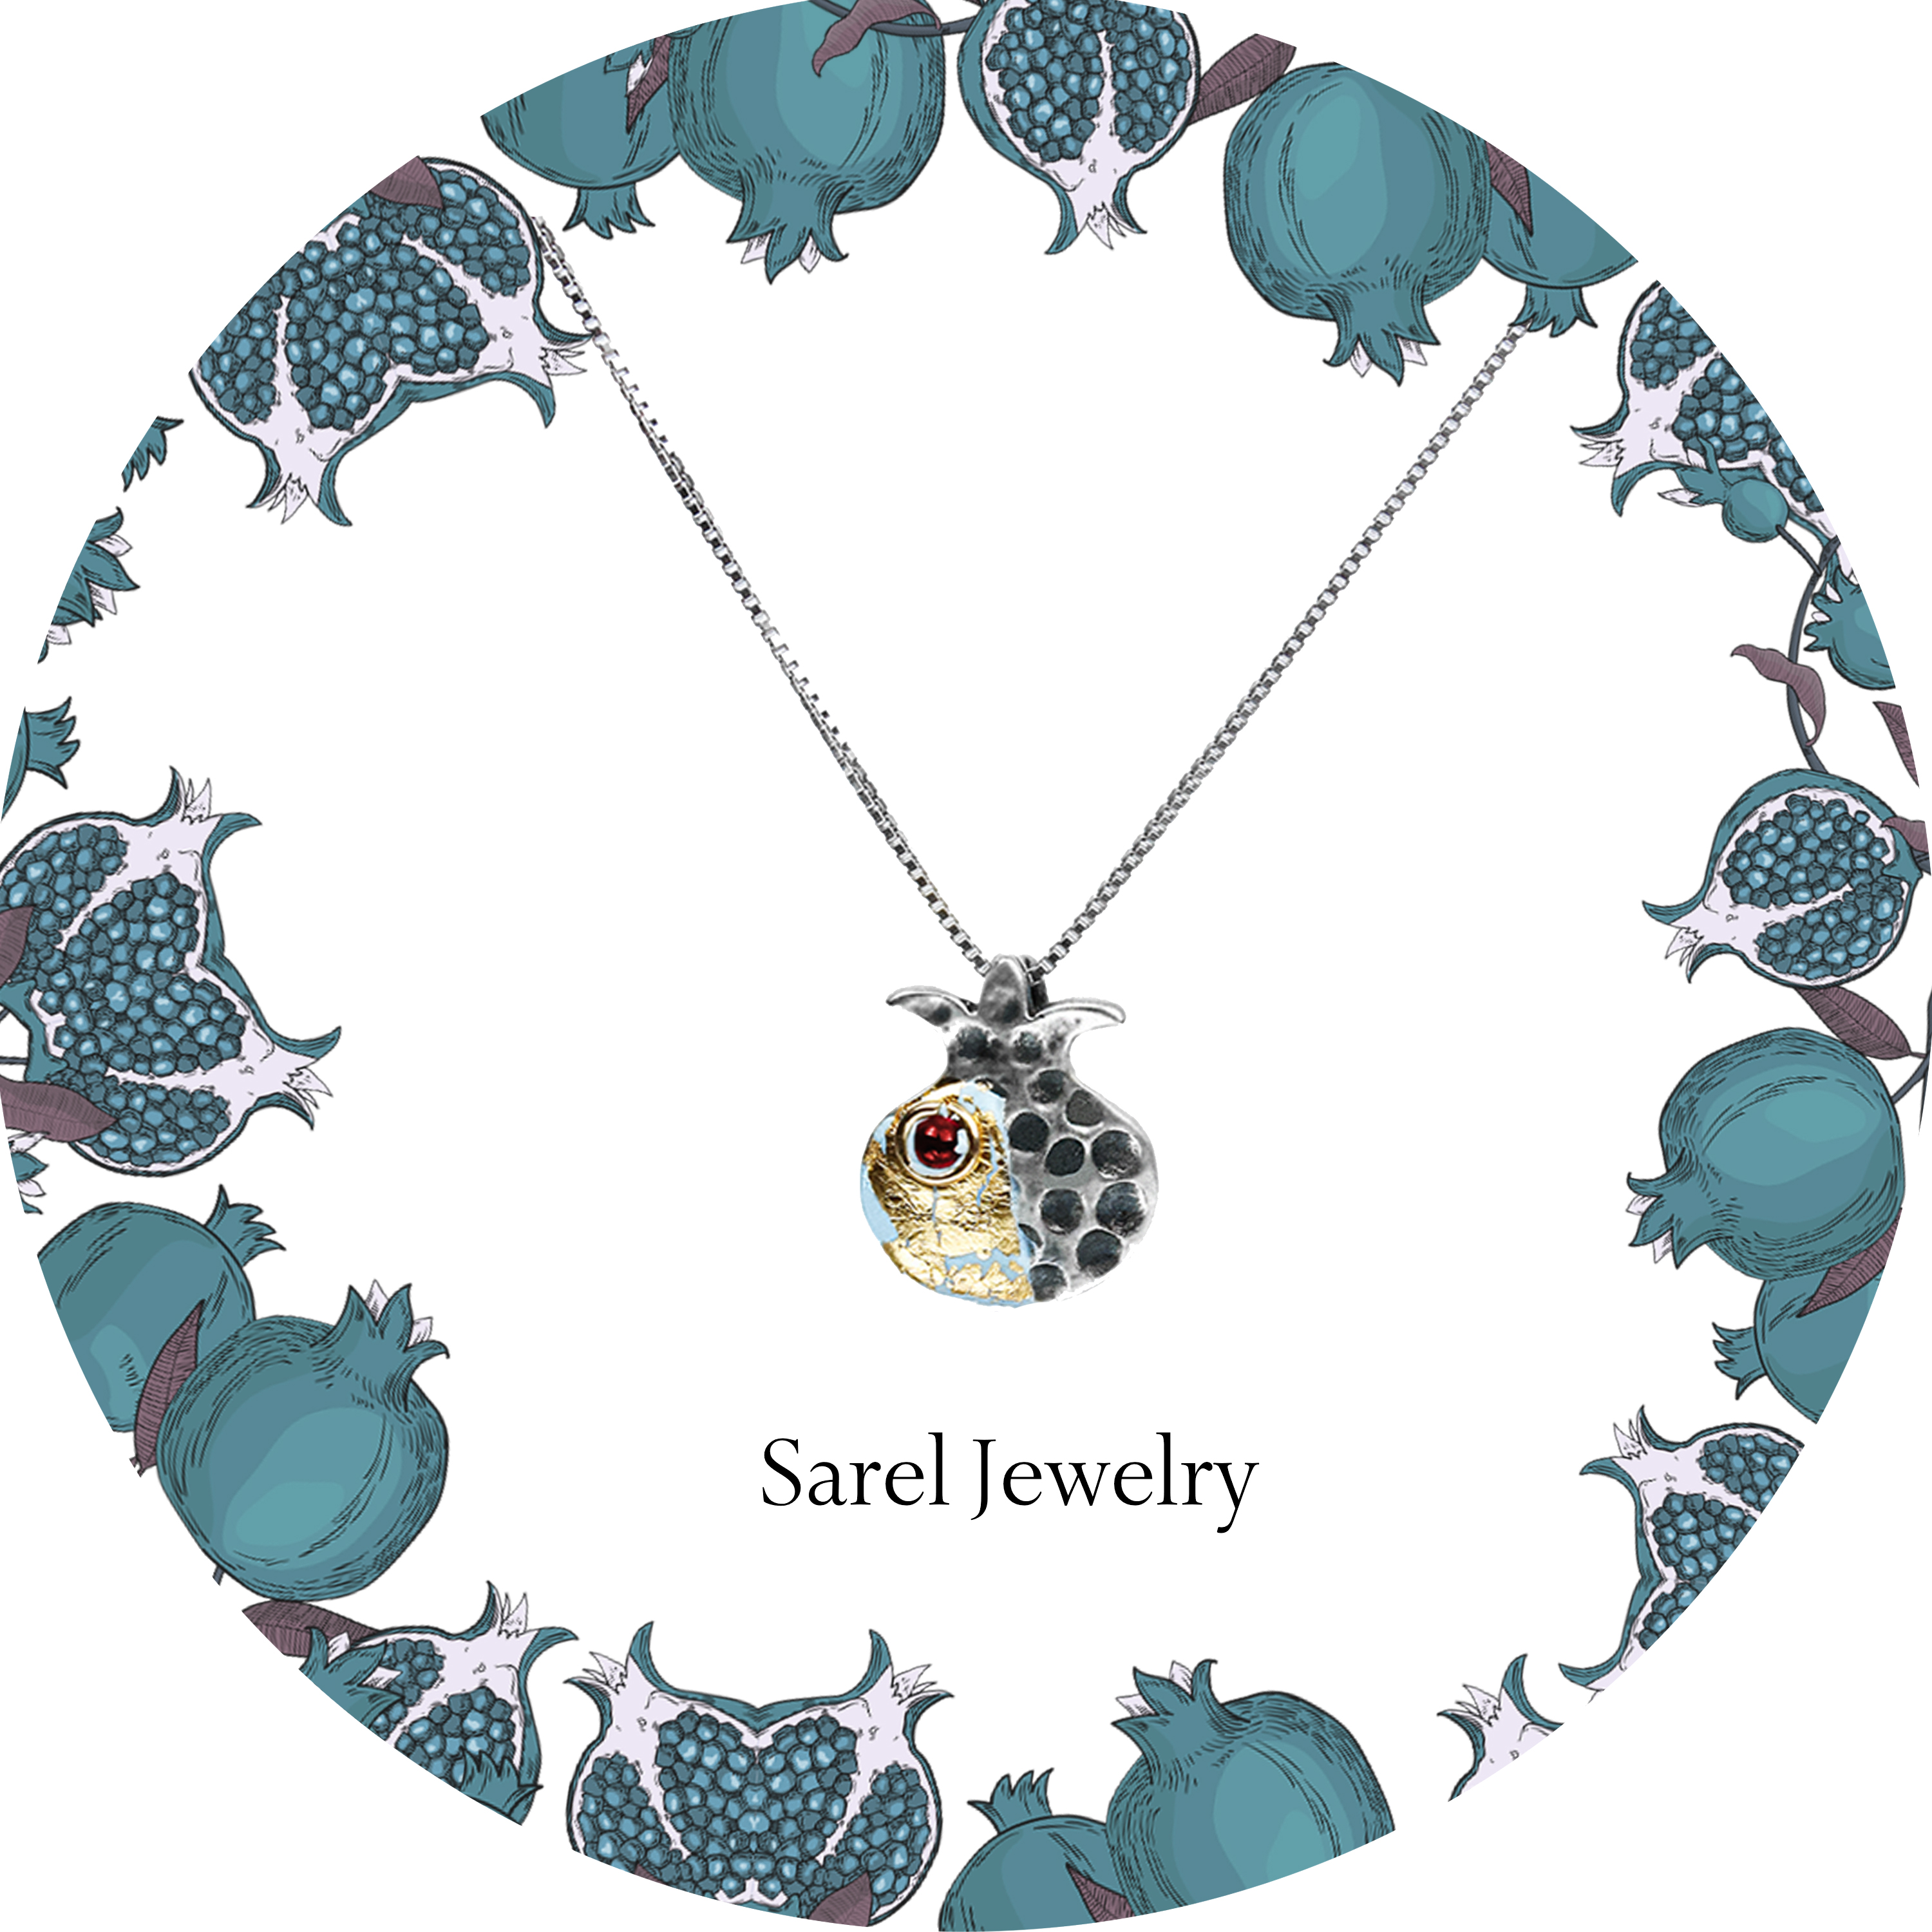 Sarel Israel Jewelry